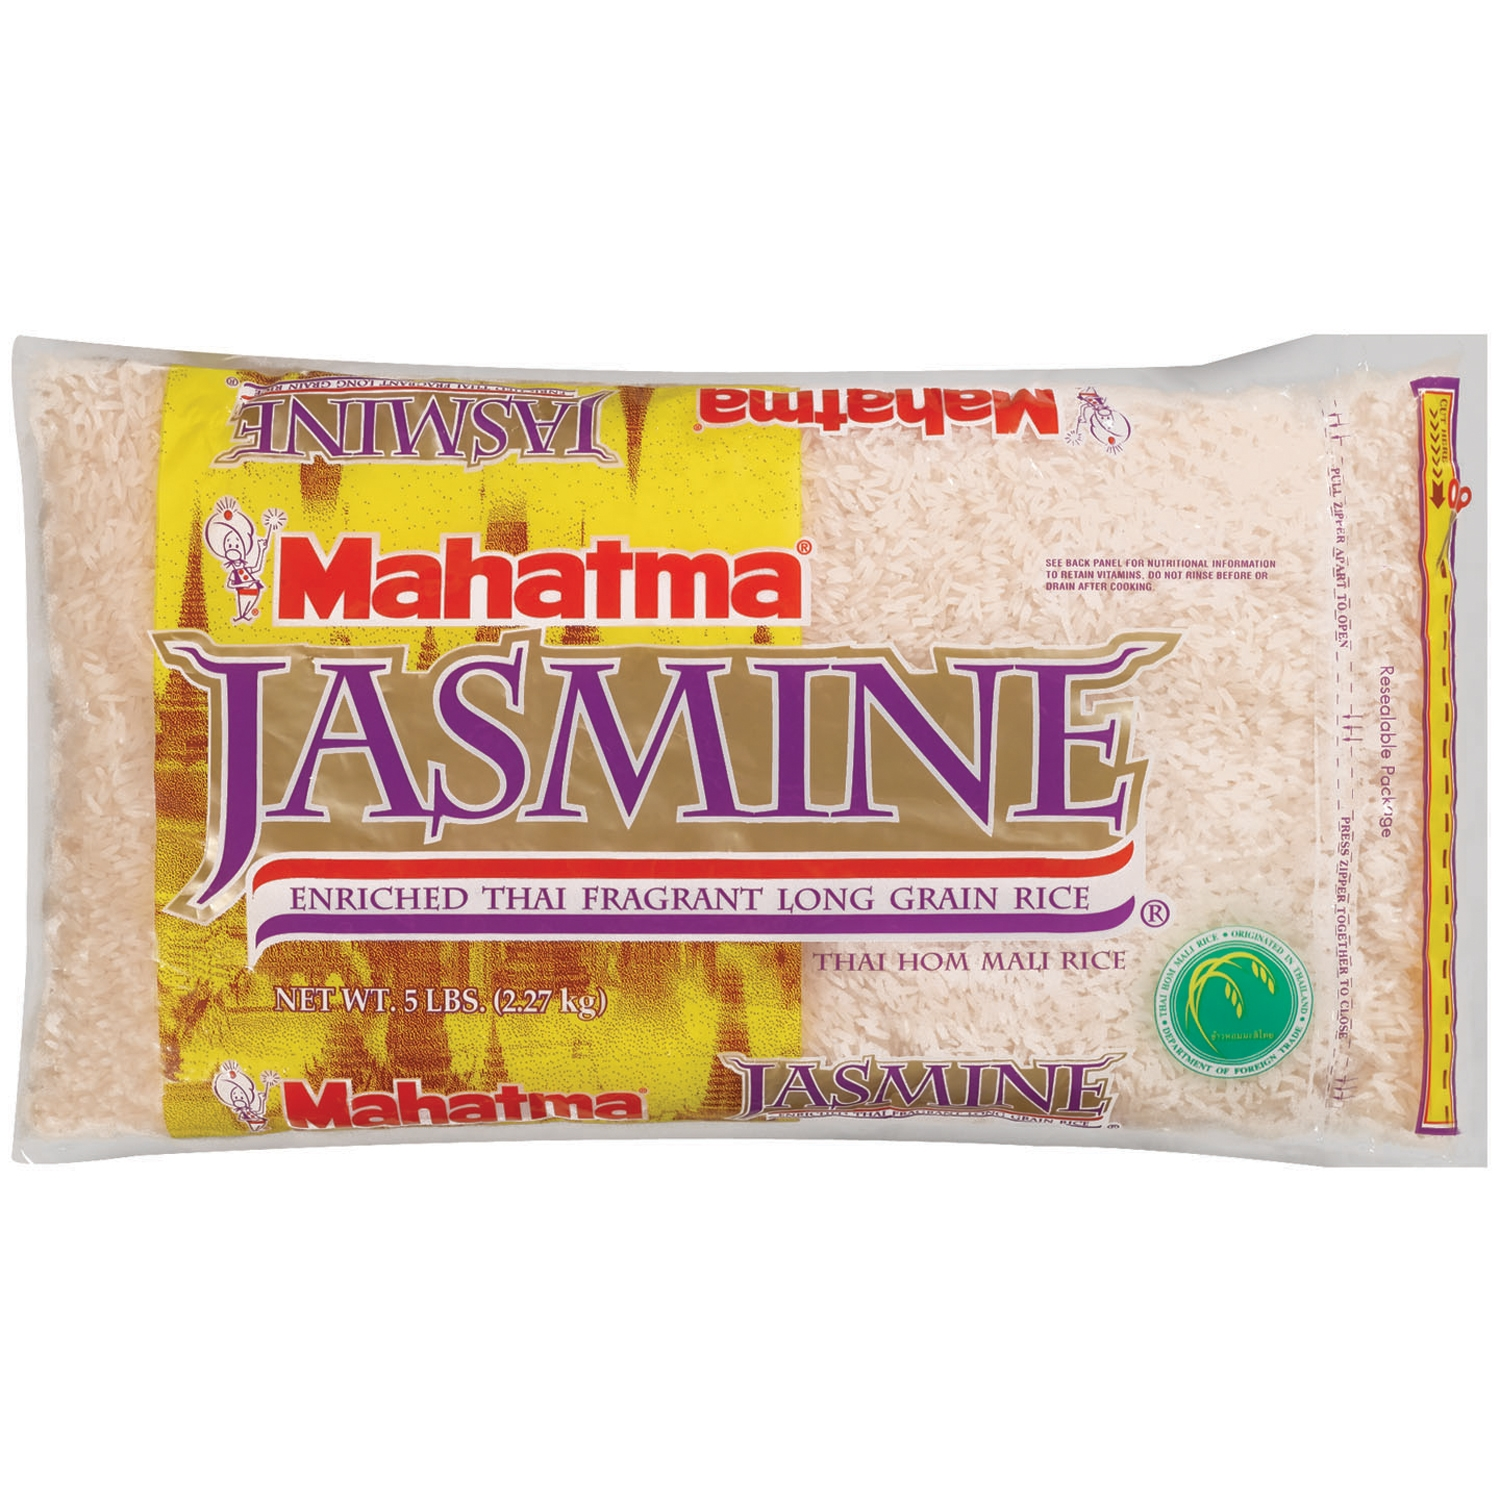 Mahatma Enriched Thai Fragrant Long Grain Jasmine Rice, 5 lb